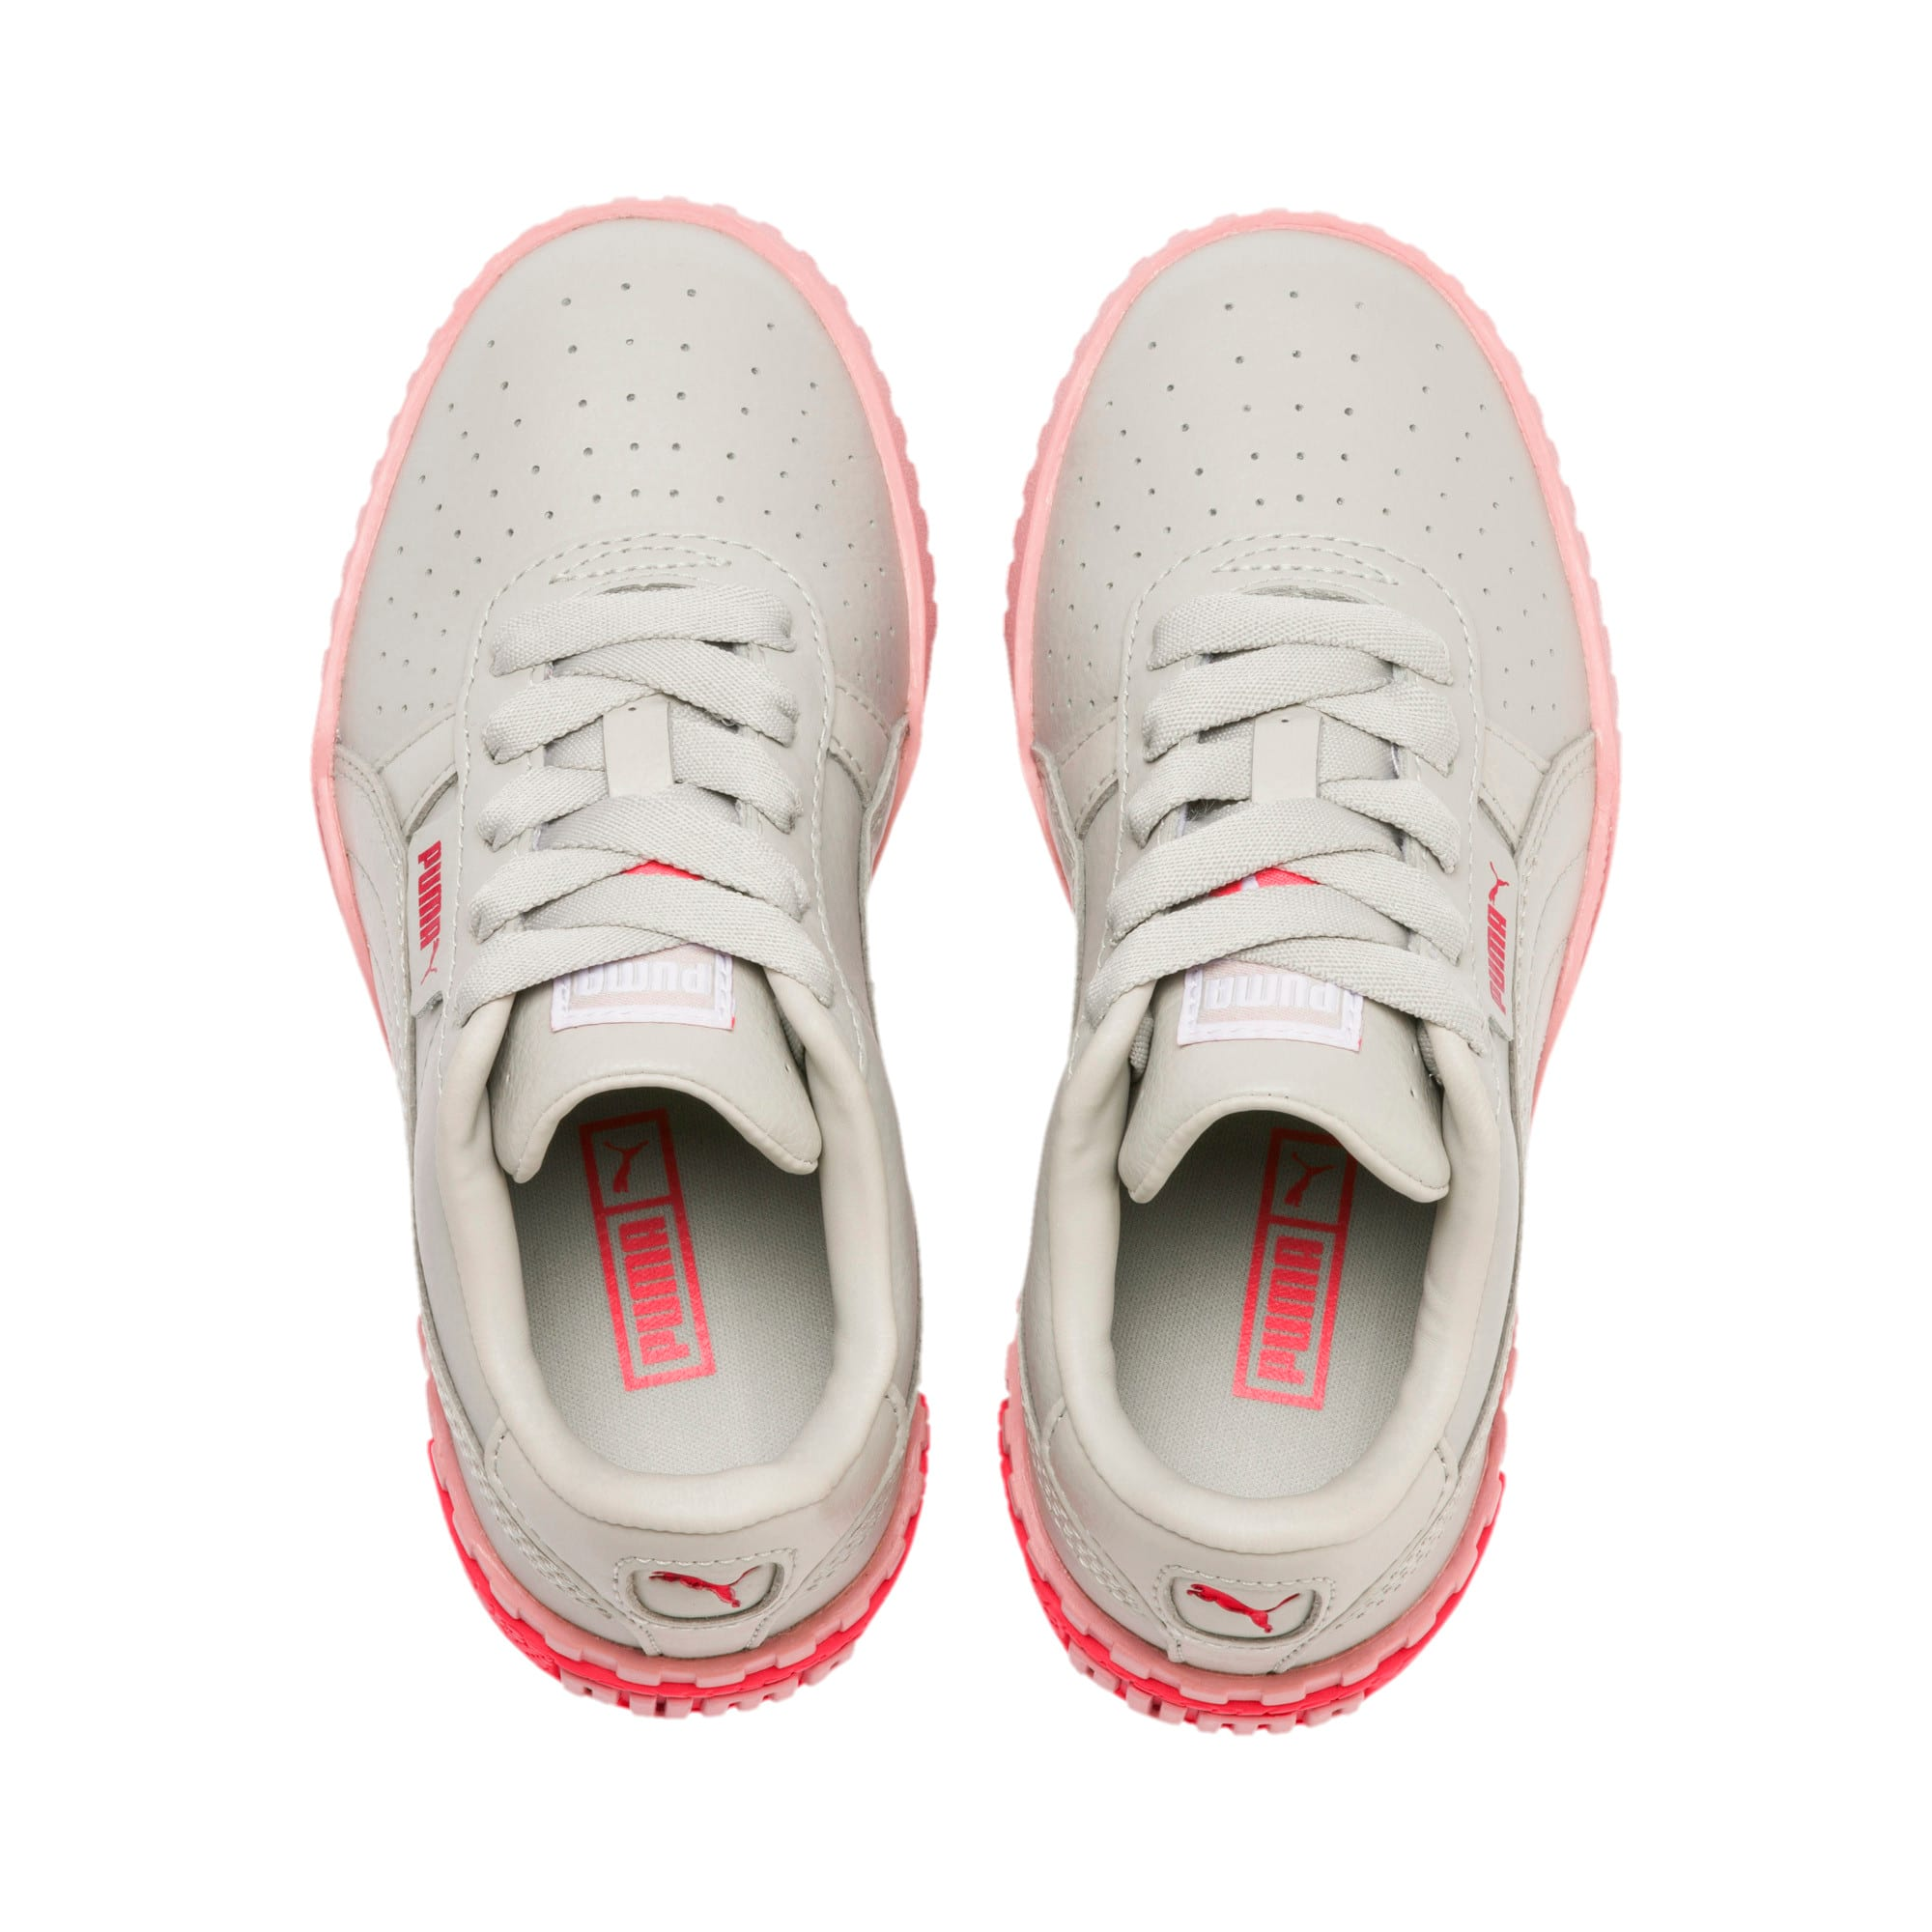 Thumbnail 6 of Cali Kids' Mädchen Sneaker, Gray Violet-Calypso Coral, medium